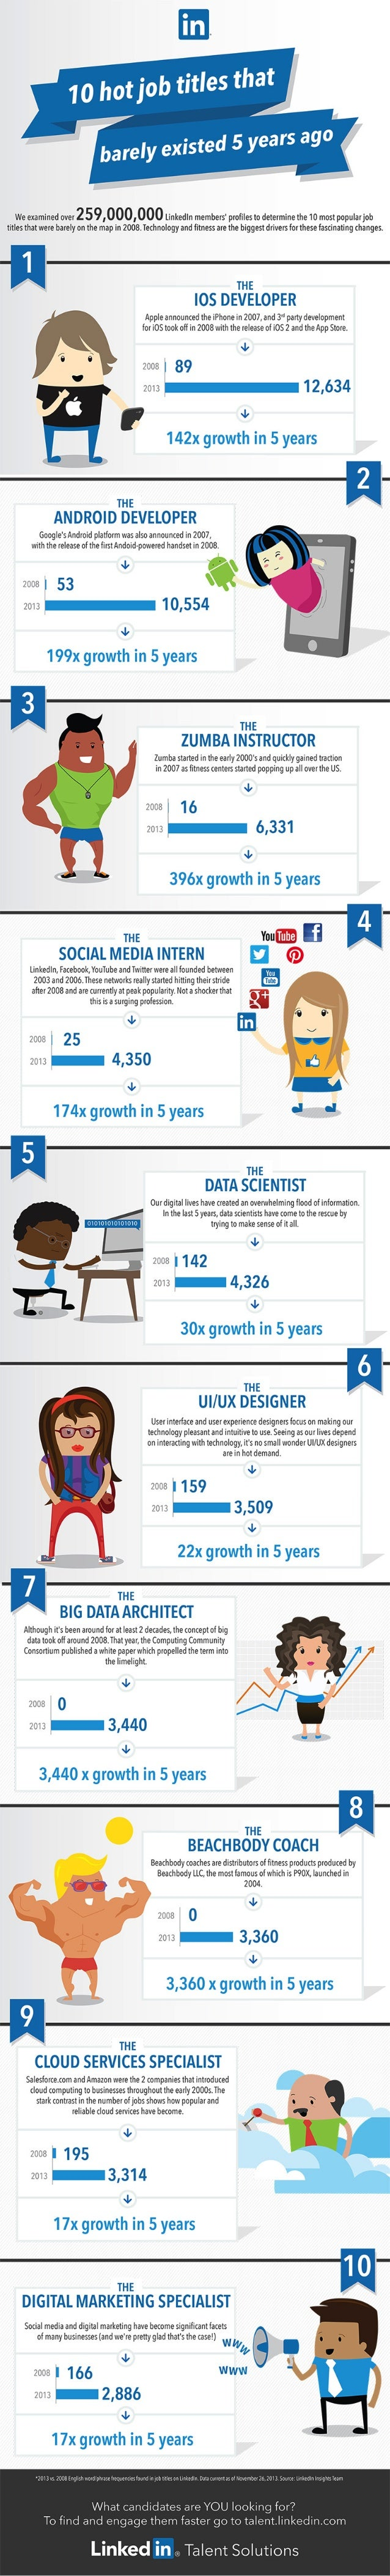 10 Job Titles That Didn't Exist 5 Years Ago | Infographic